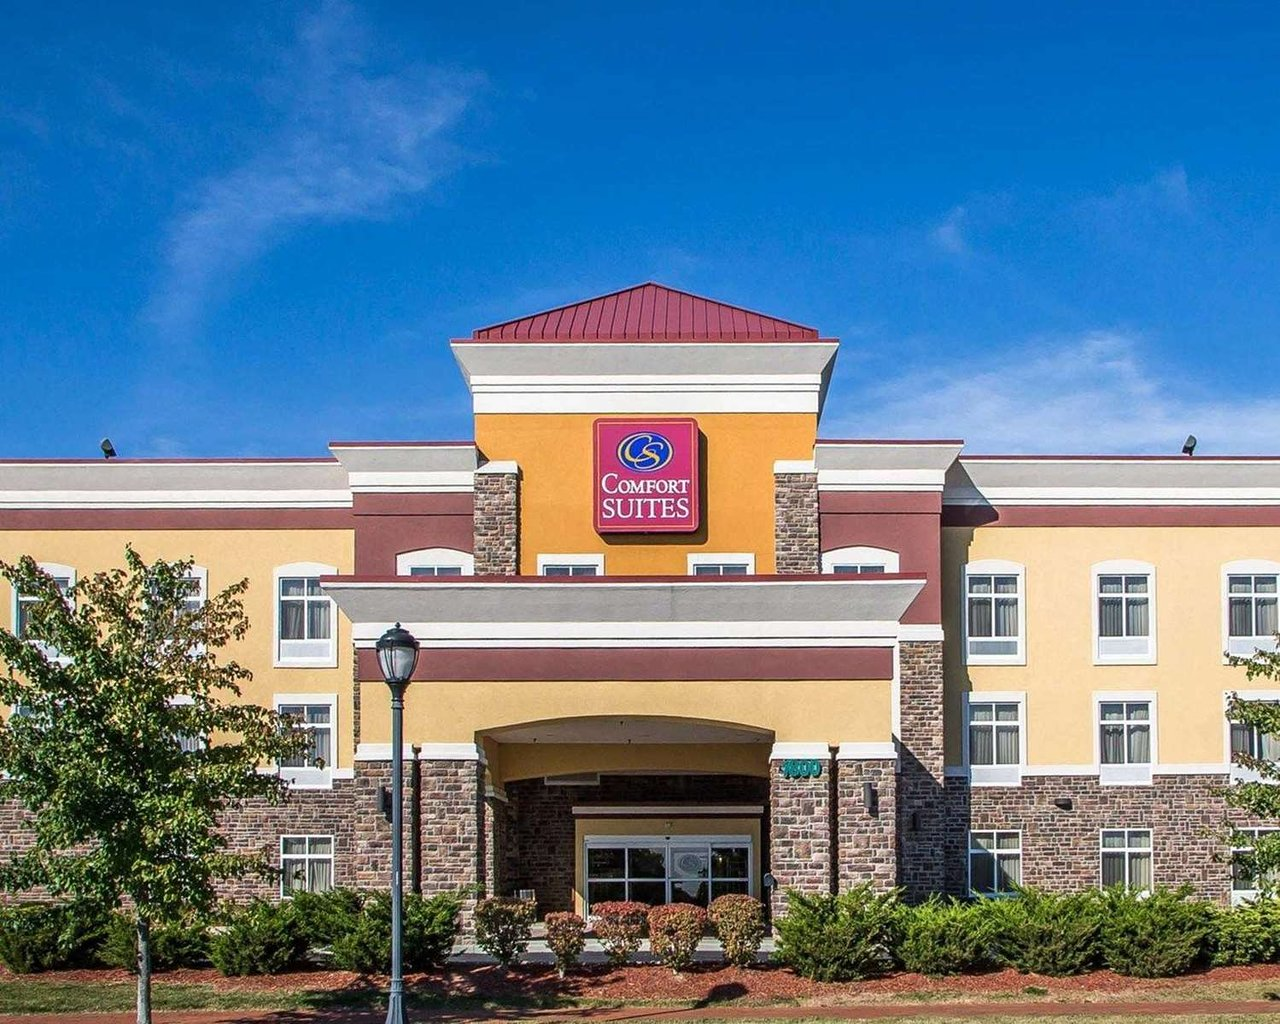 comfort suites 95 1 1 6 updated 2019 prices hotel reviews rh tripadvisor com